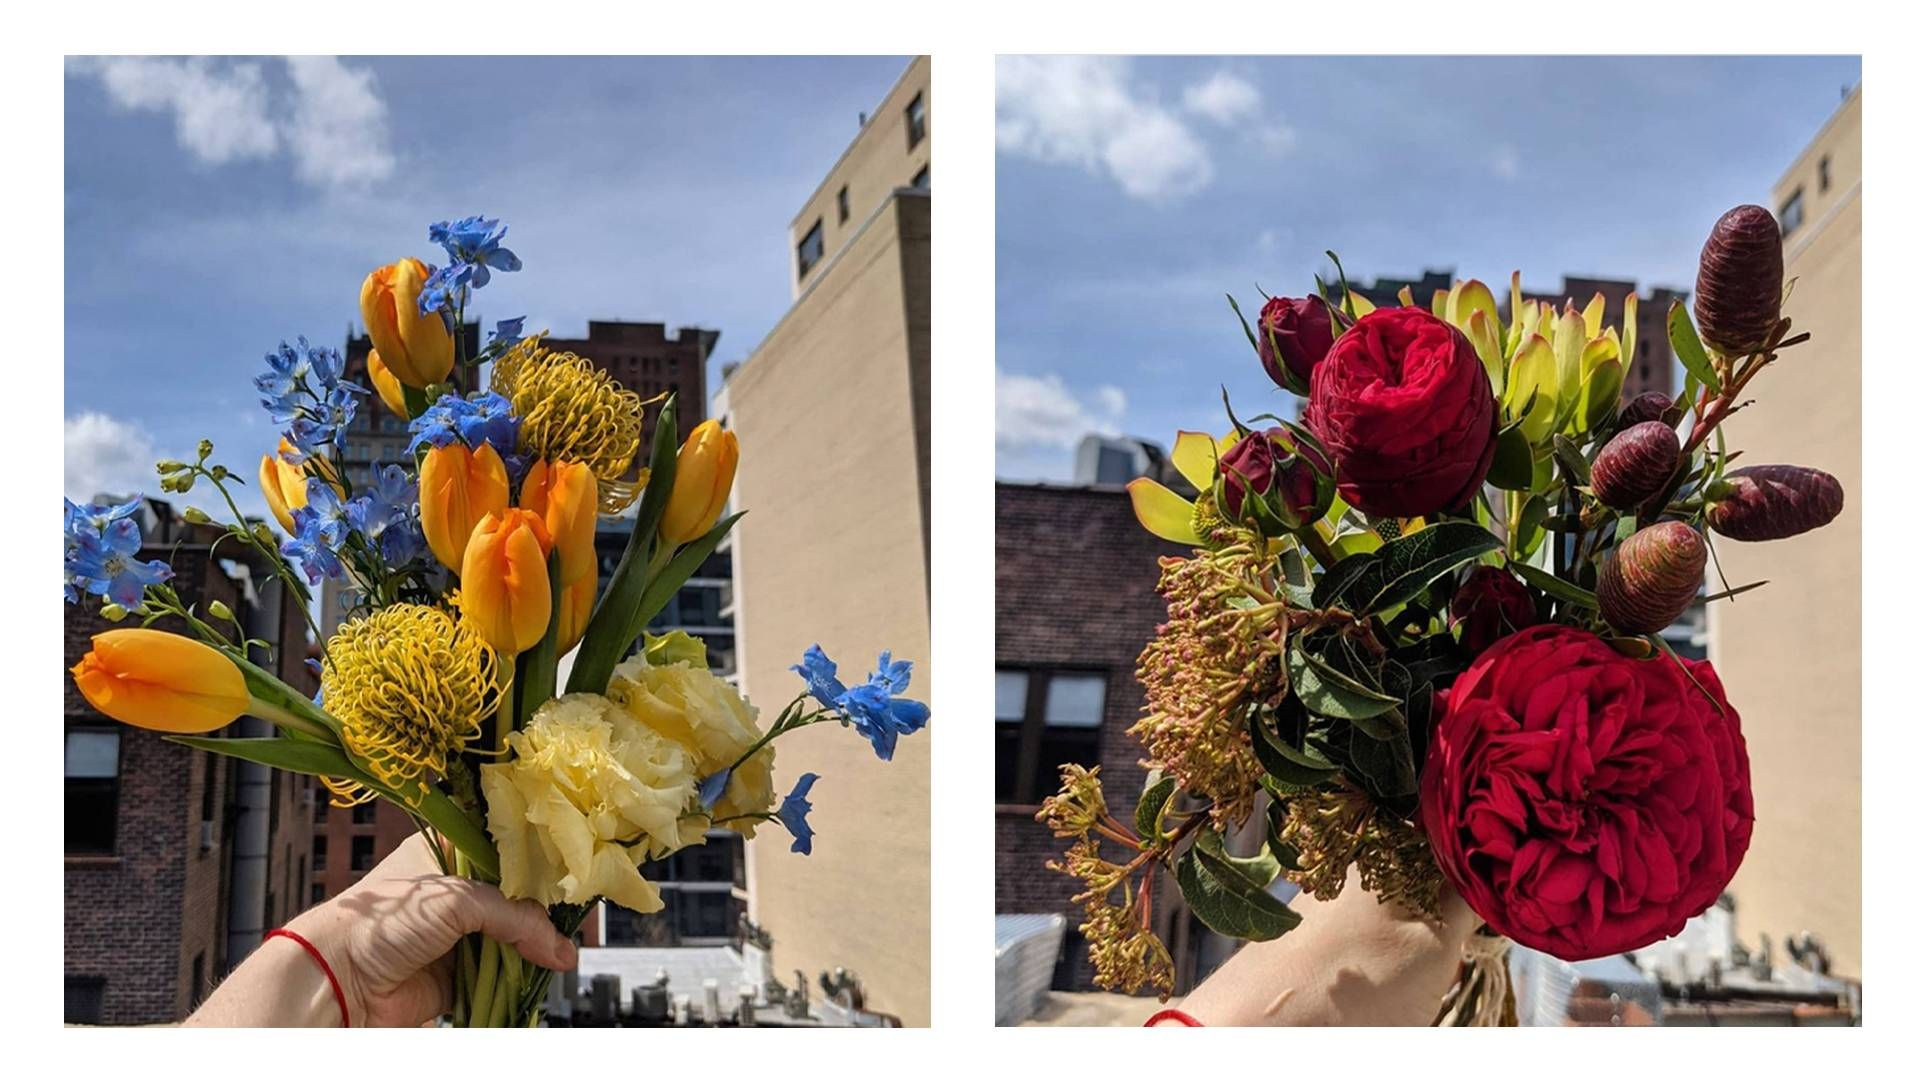 images of flower arrangements by Jill Hilbrenner. Rewire PBS living arranging flowers